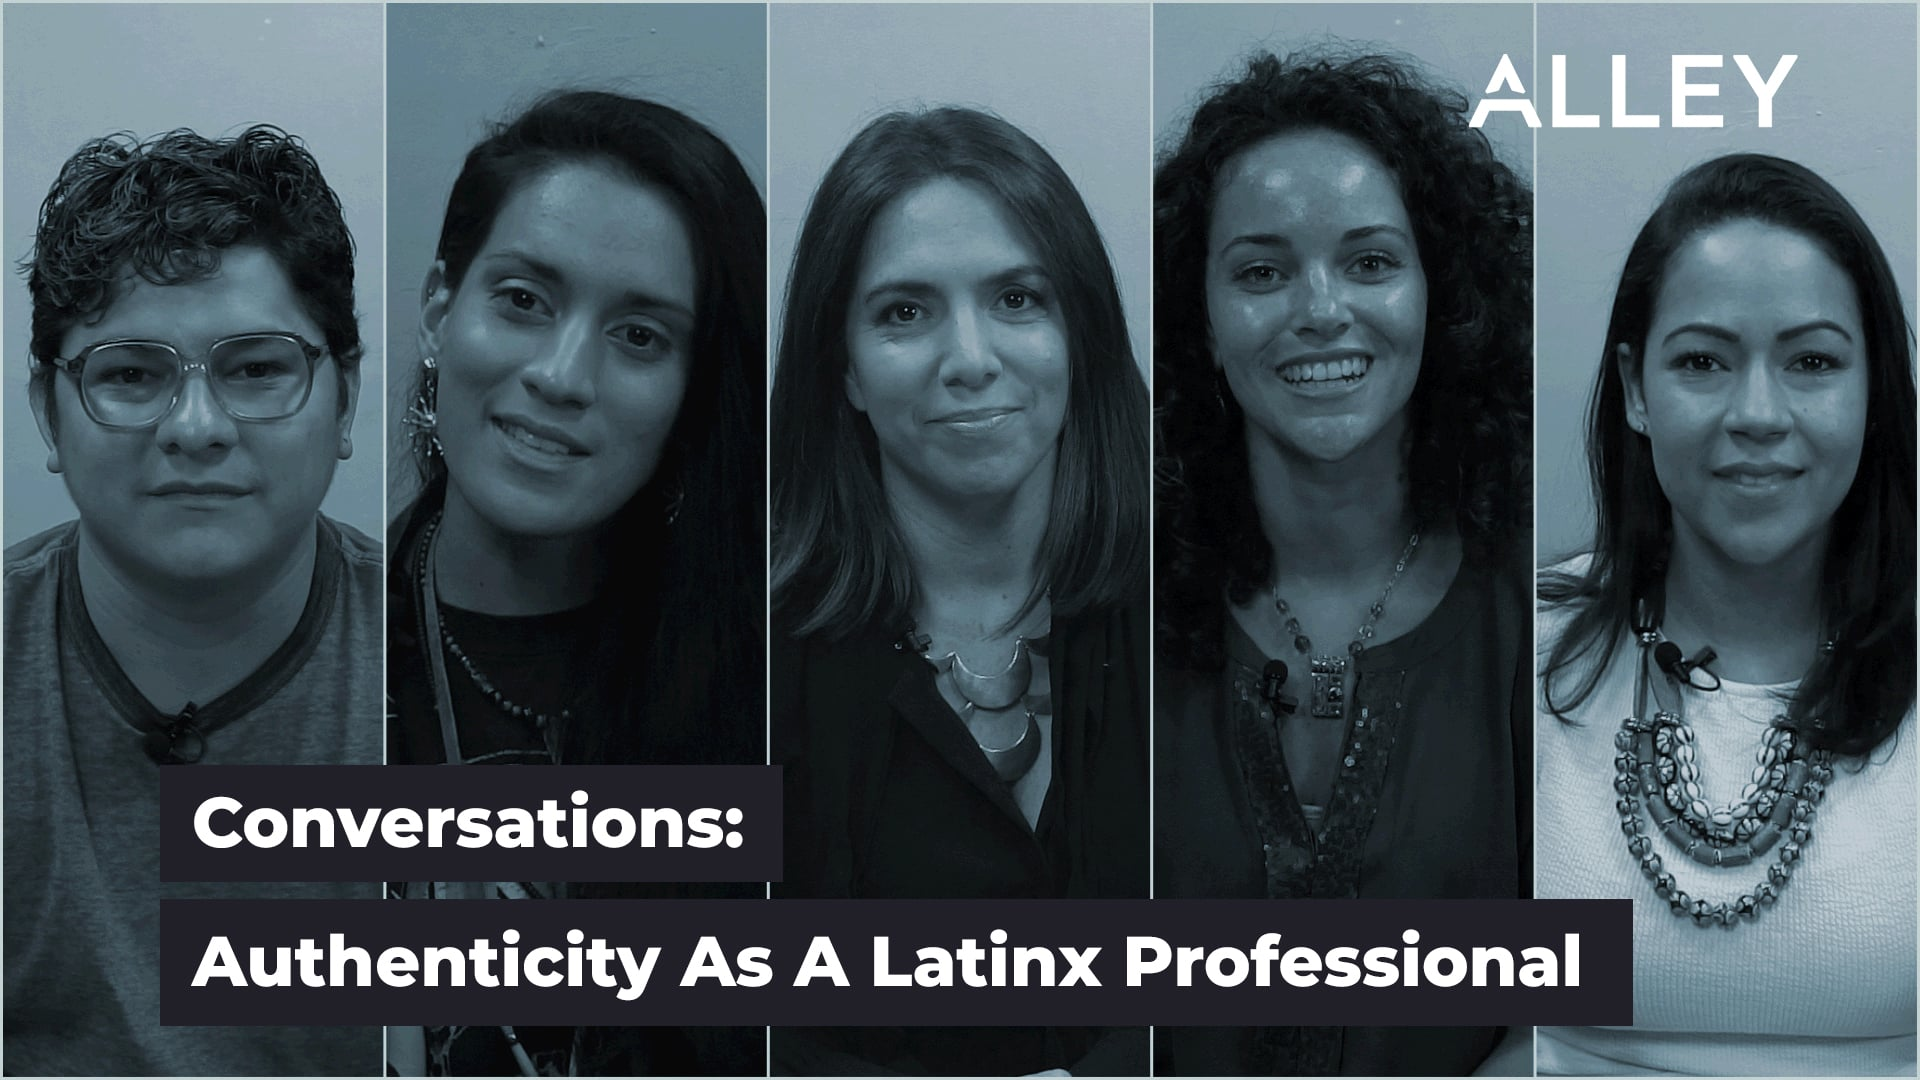 Alley Conversations: Authenticity In The Workplace As A Latinx Professional